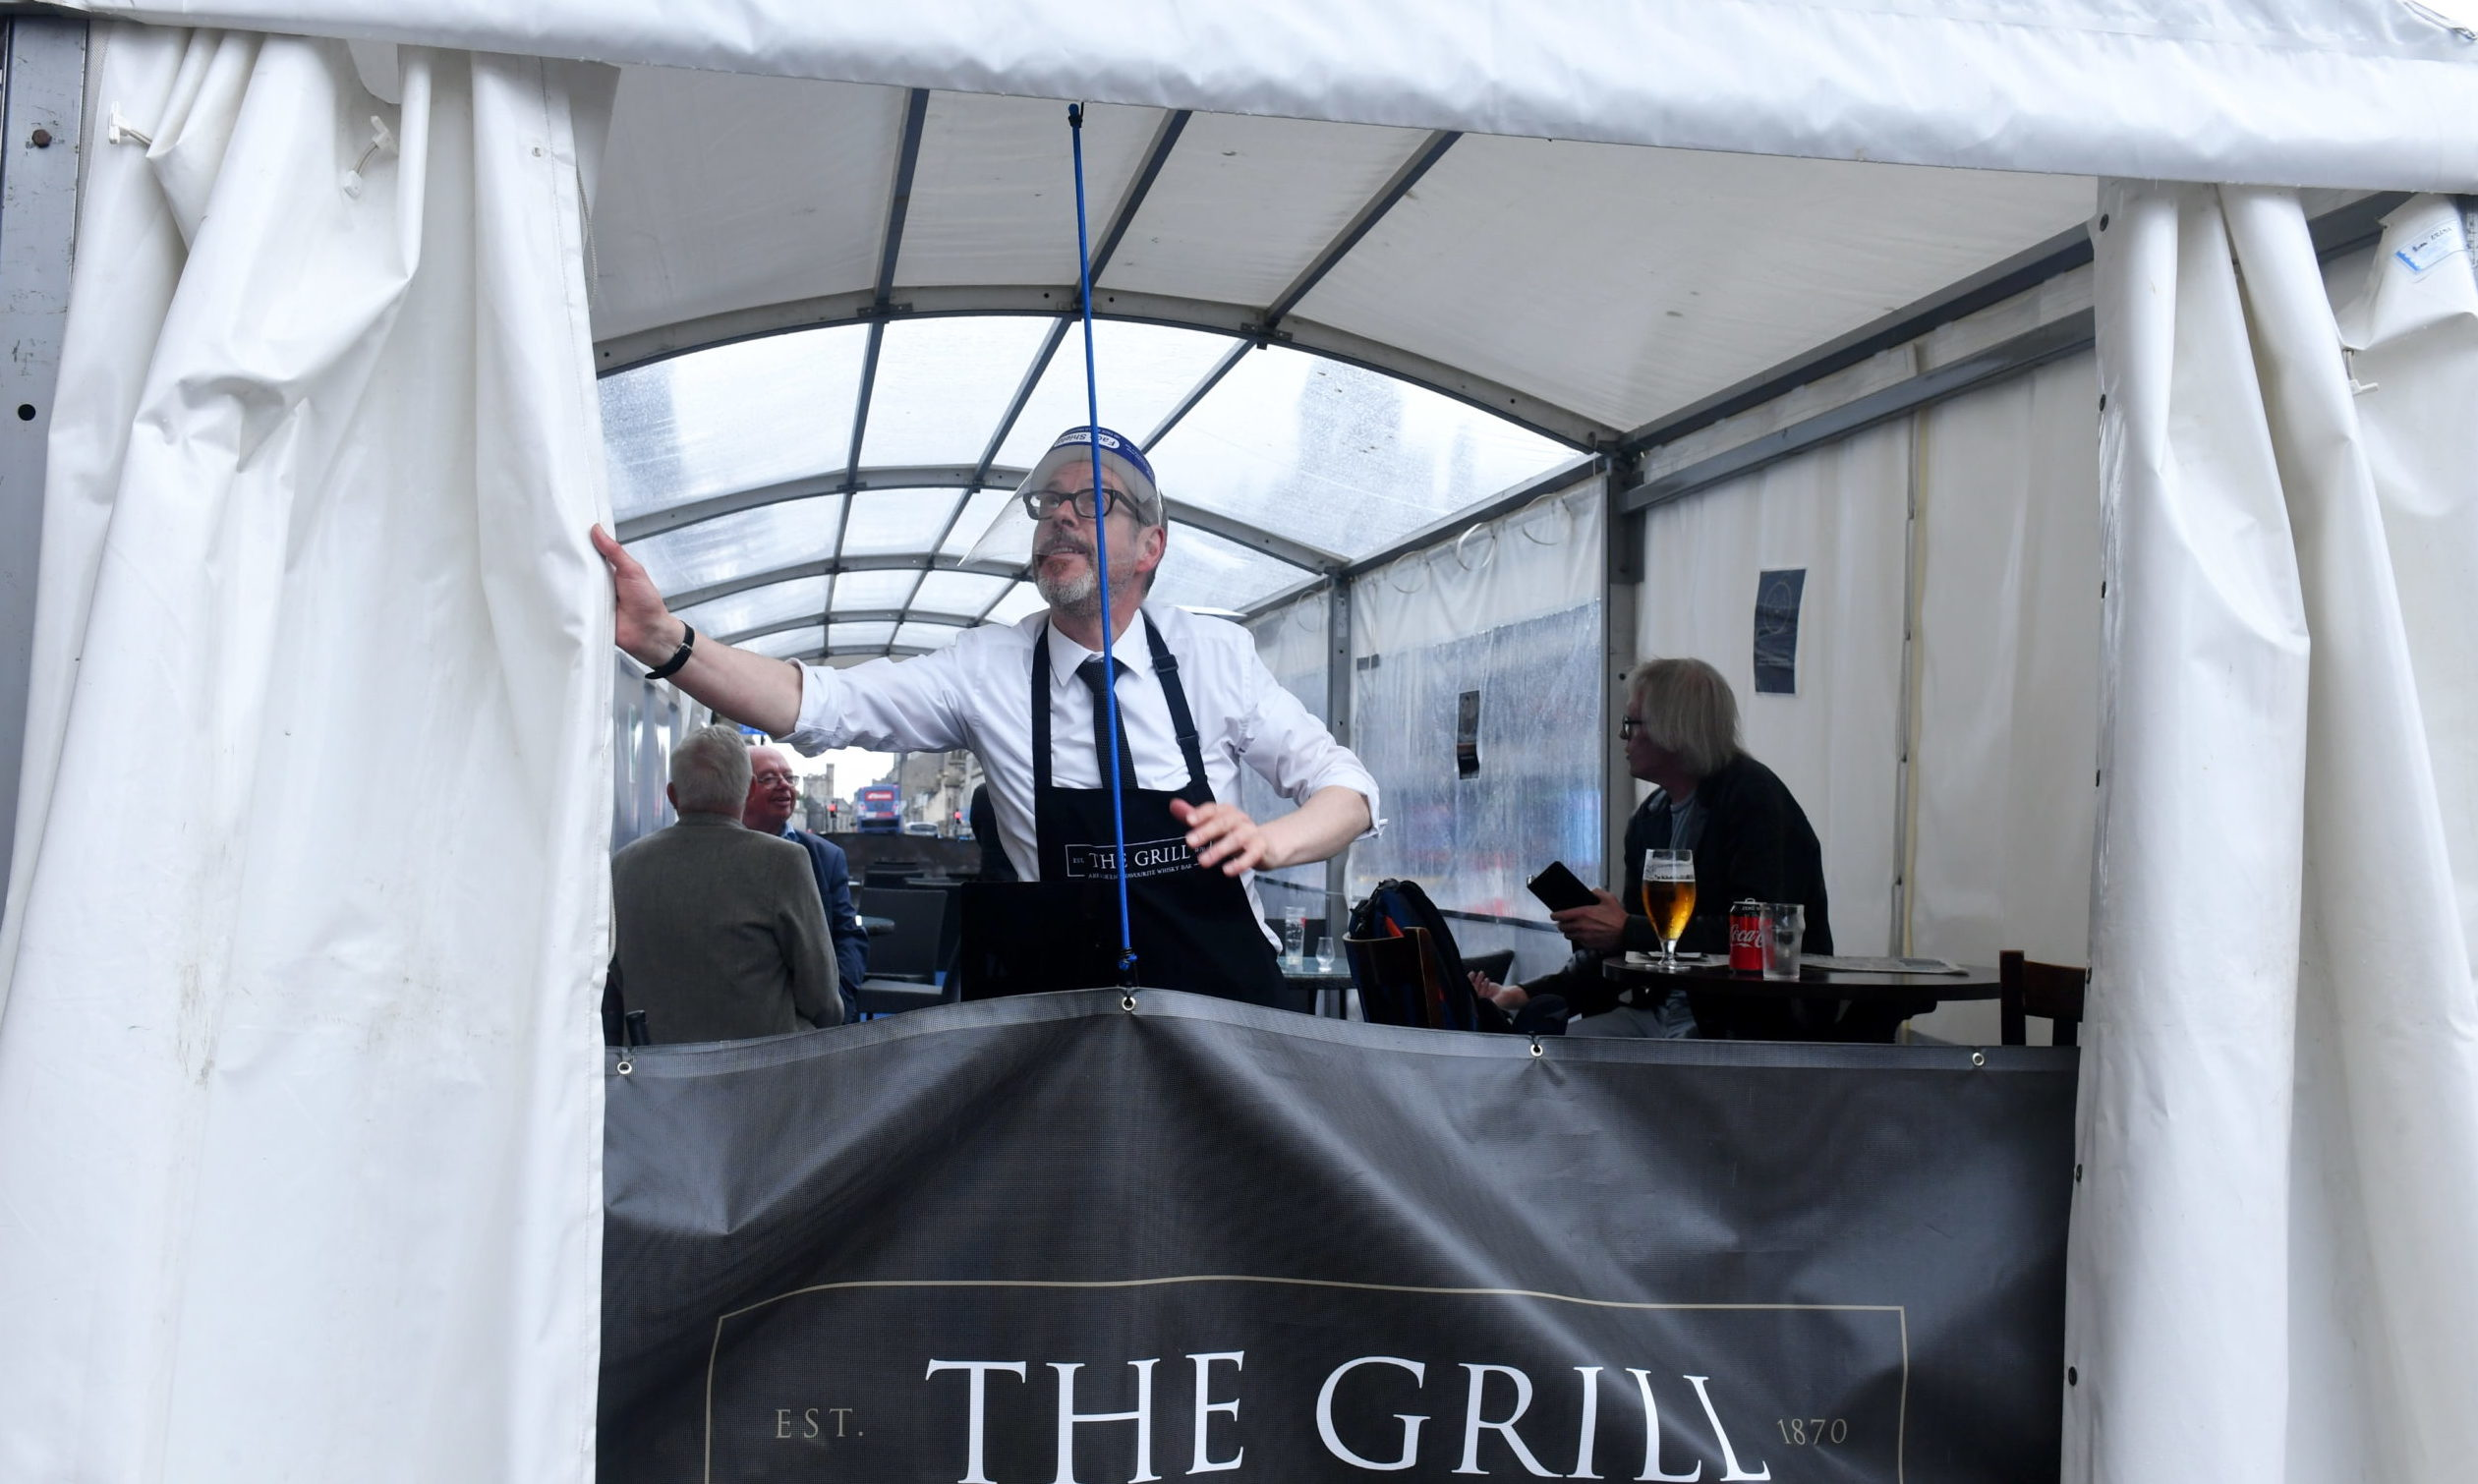 Kevin McKenzie at The Grill on Union Street. Picture by Chris Sumner